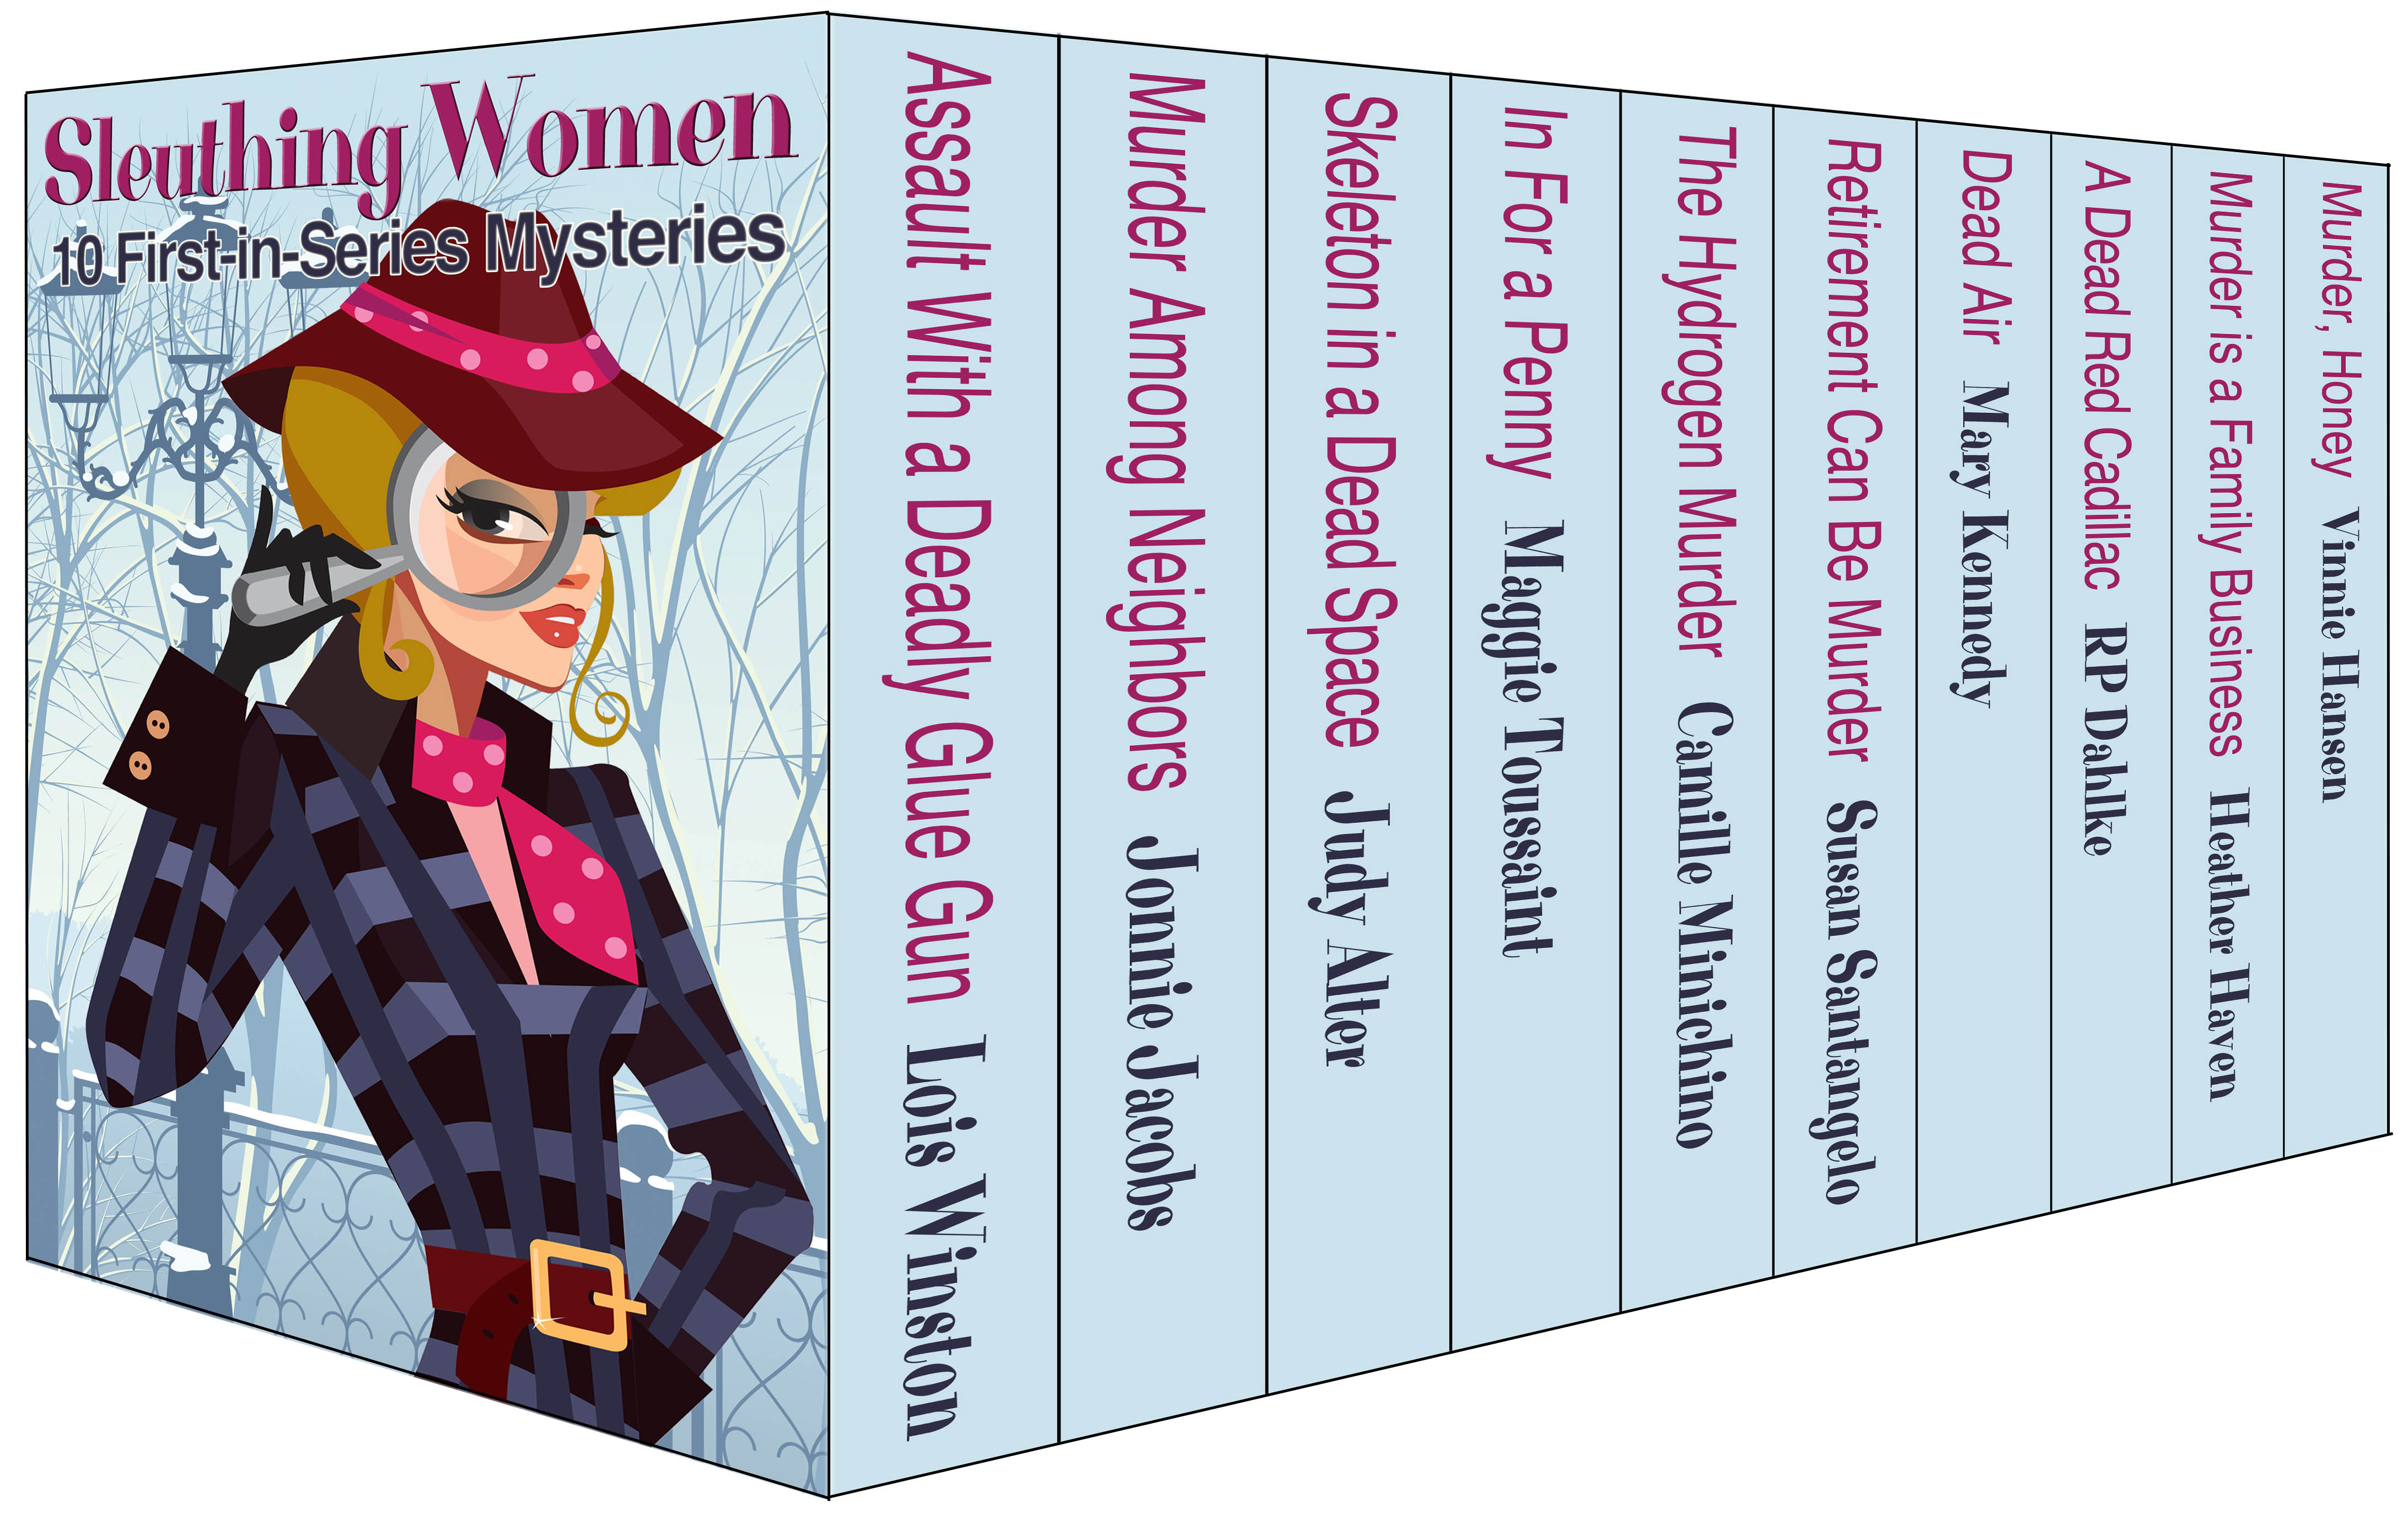 sleuthing women 3-D.2